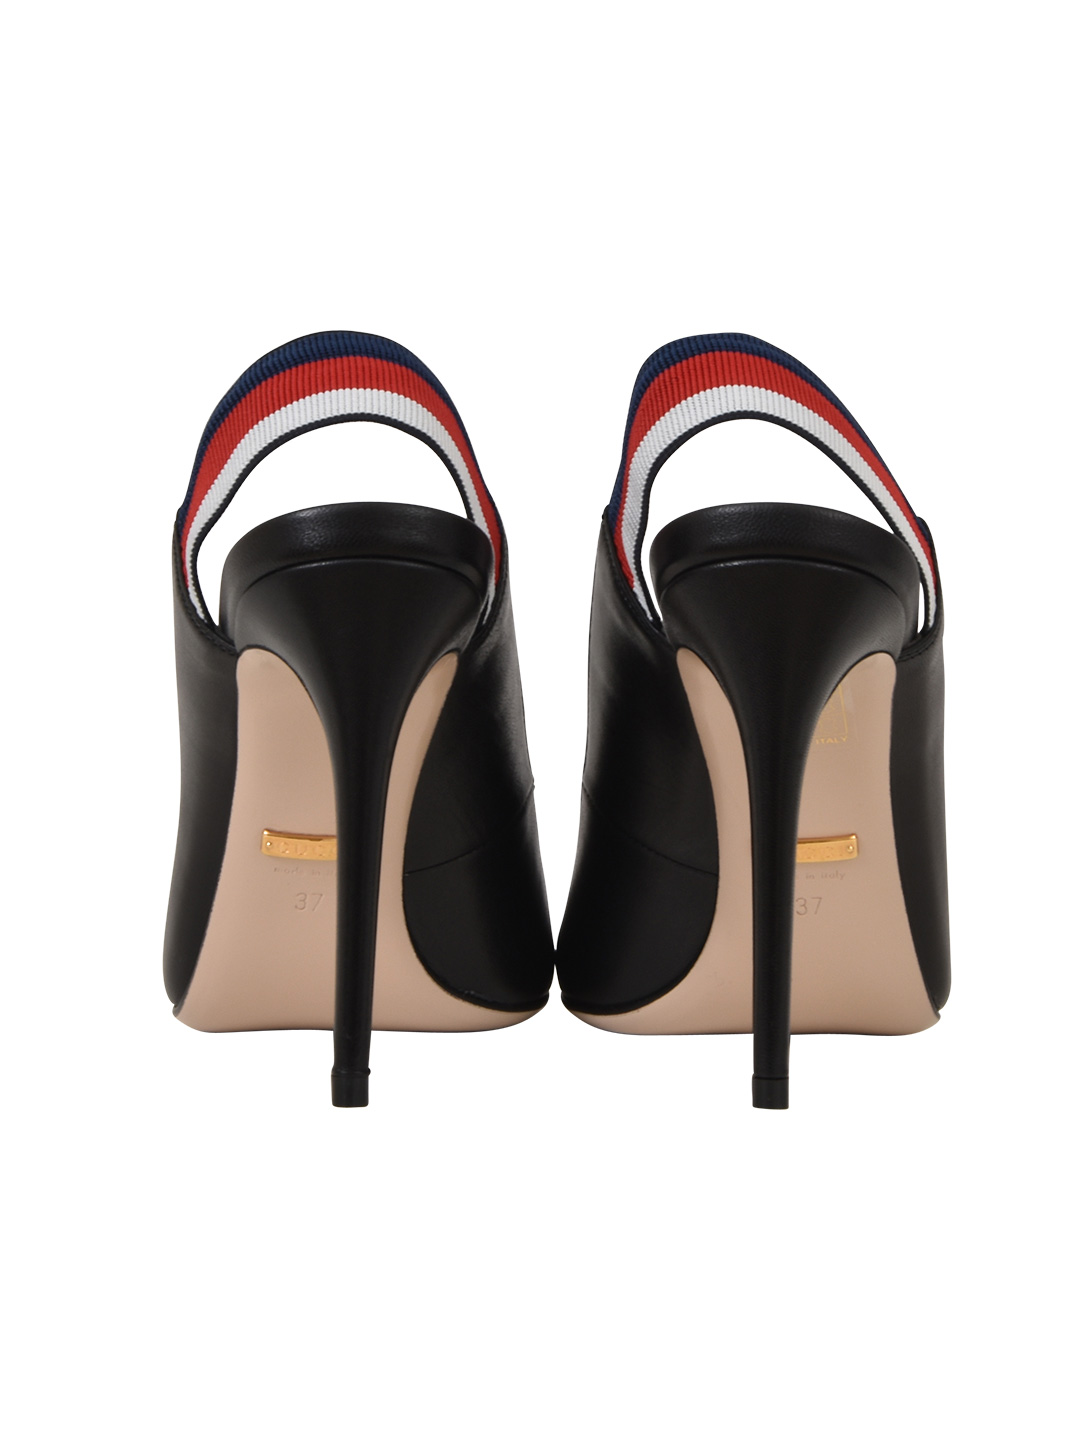 bfcd6c6a112 Gucci Sylvie Leather Web Slingback Pumps In Black